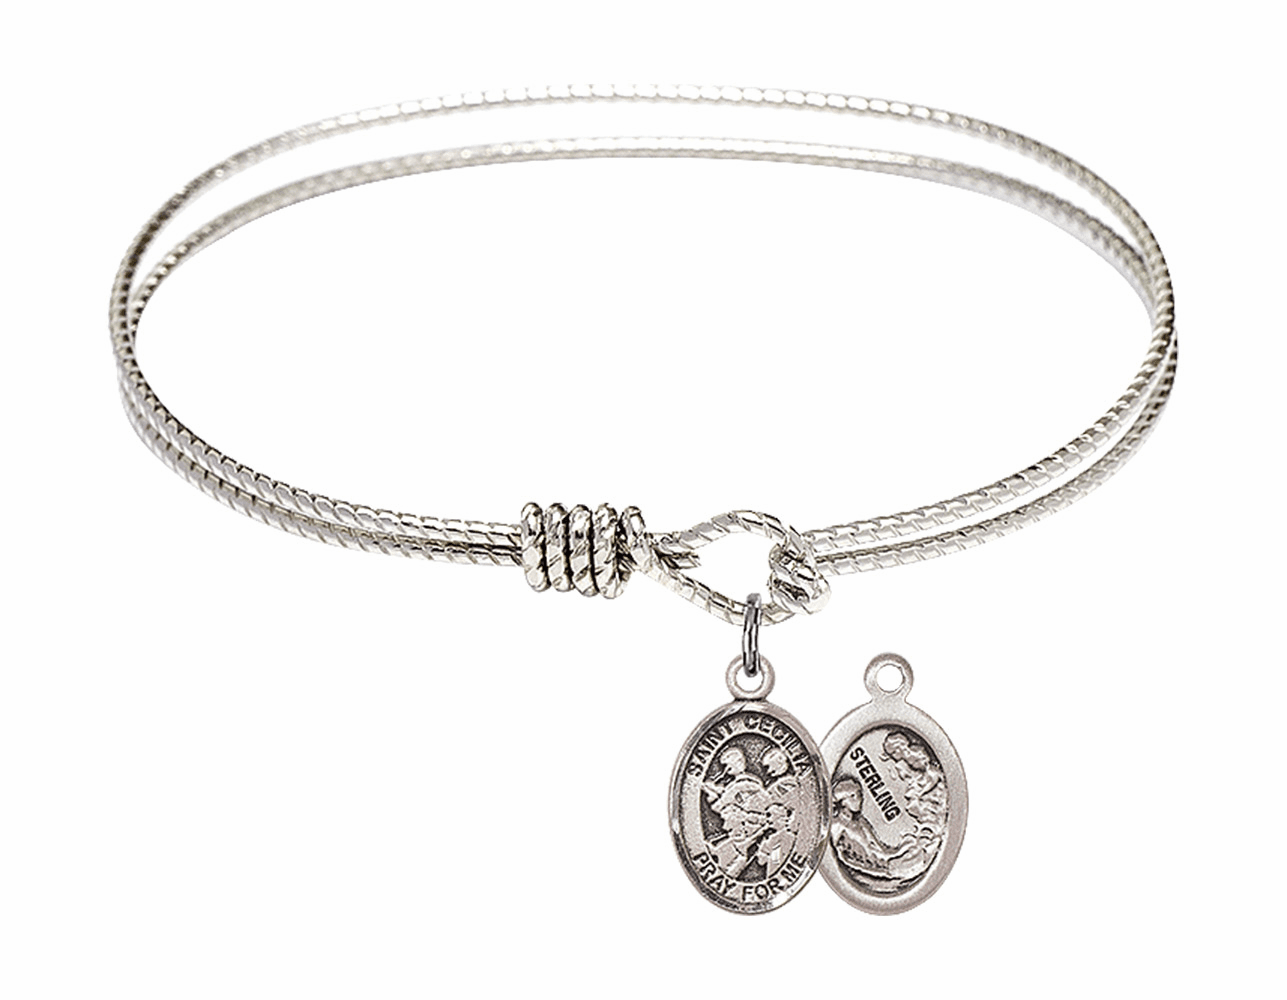 Twist Round Eye Hook St Cecilia Marching Band Bangle Charm Bracelet by Bliss